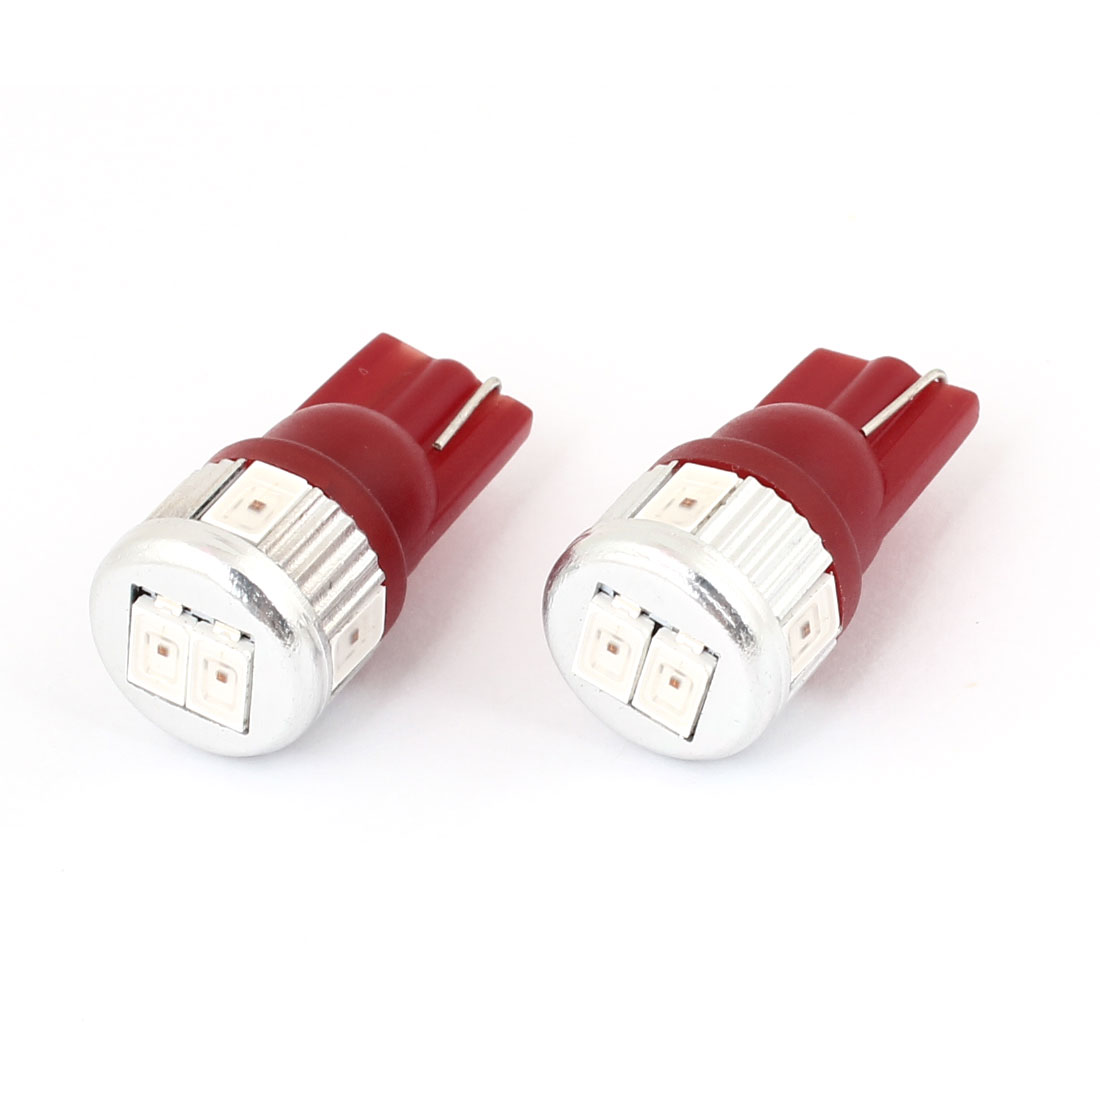 Pair T10 W5W 6 Red 5630 SMD LED Turn Signal Light Bulb for Auto Car